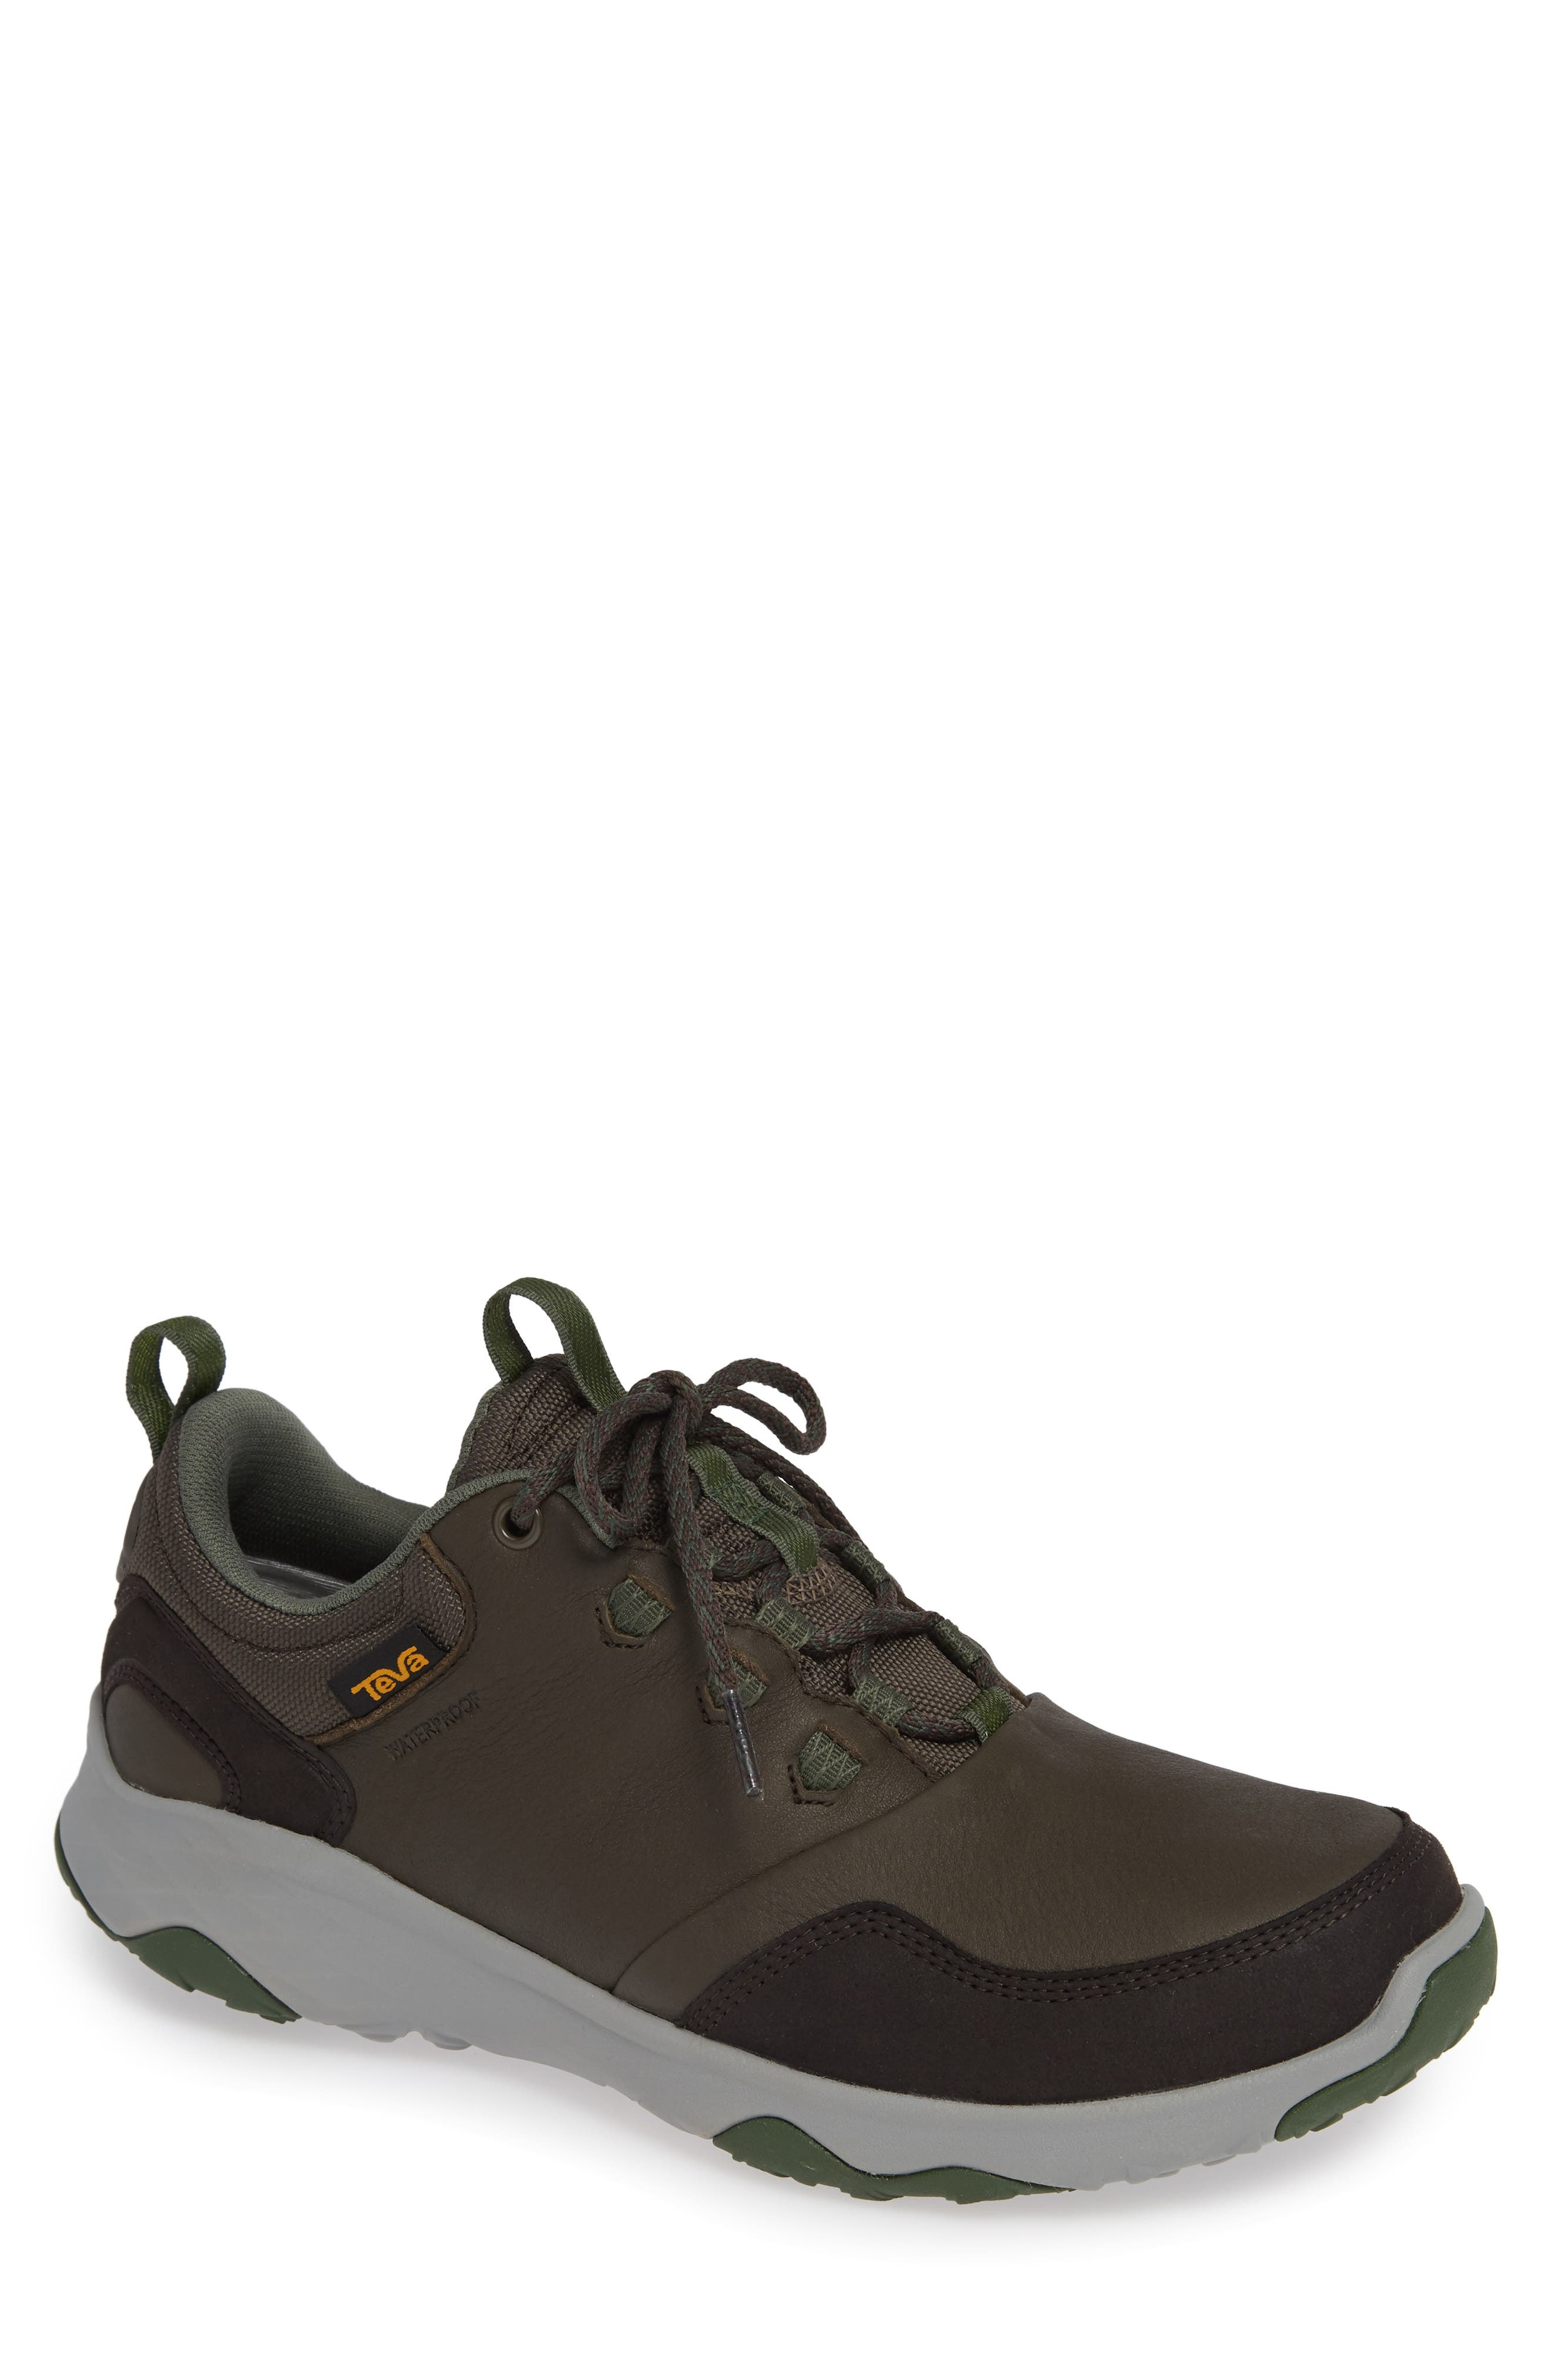 Arrowood Waterproof Sneaker,                             Main thumbnail 1, color,                             BLACK OLIVE LEATHER